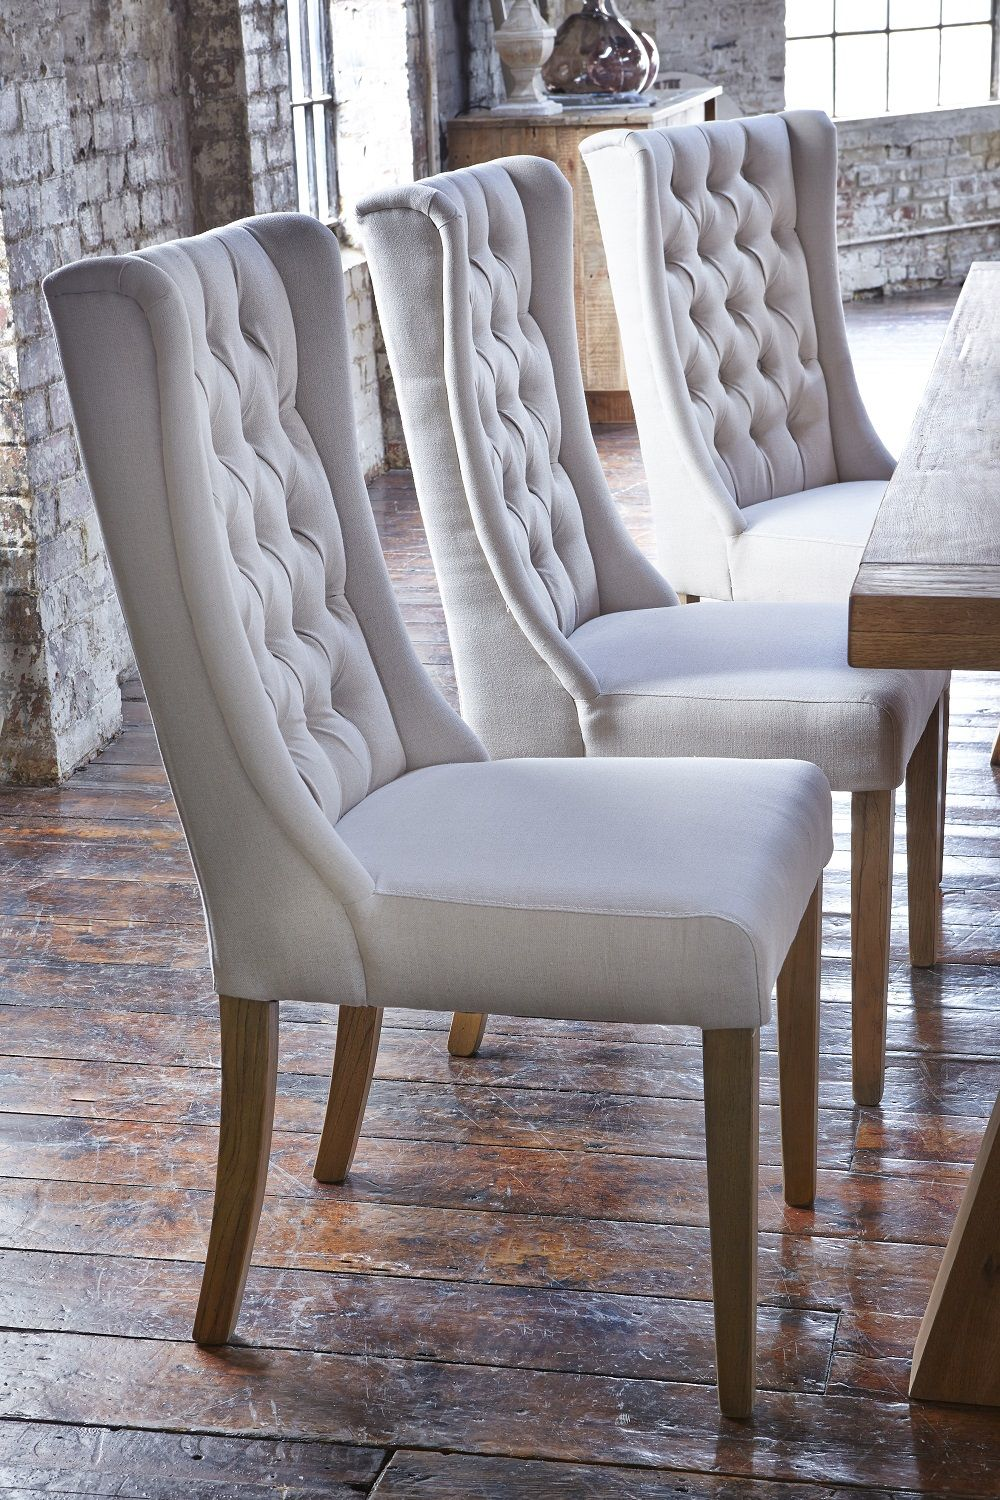 25 Exquisite Corner Breakfast Nook Ideas In Various Styles Upholstered Dining ChairsTufted ChairGrey